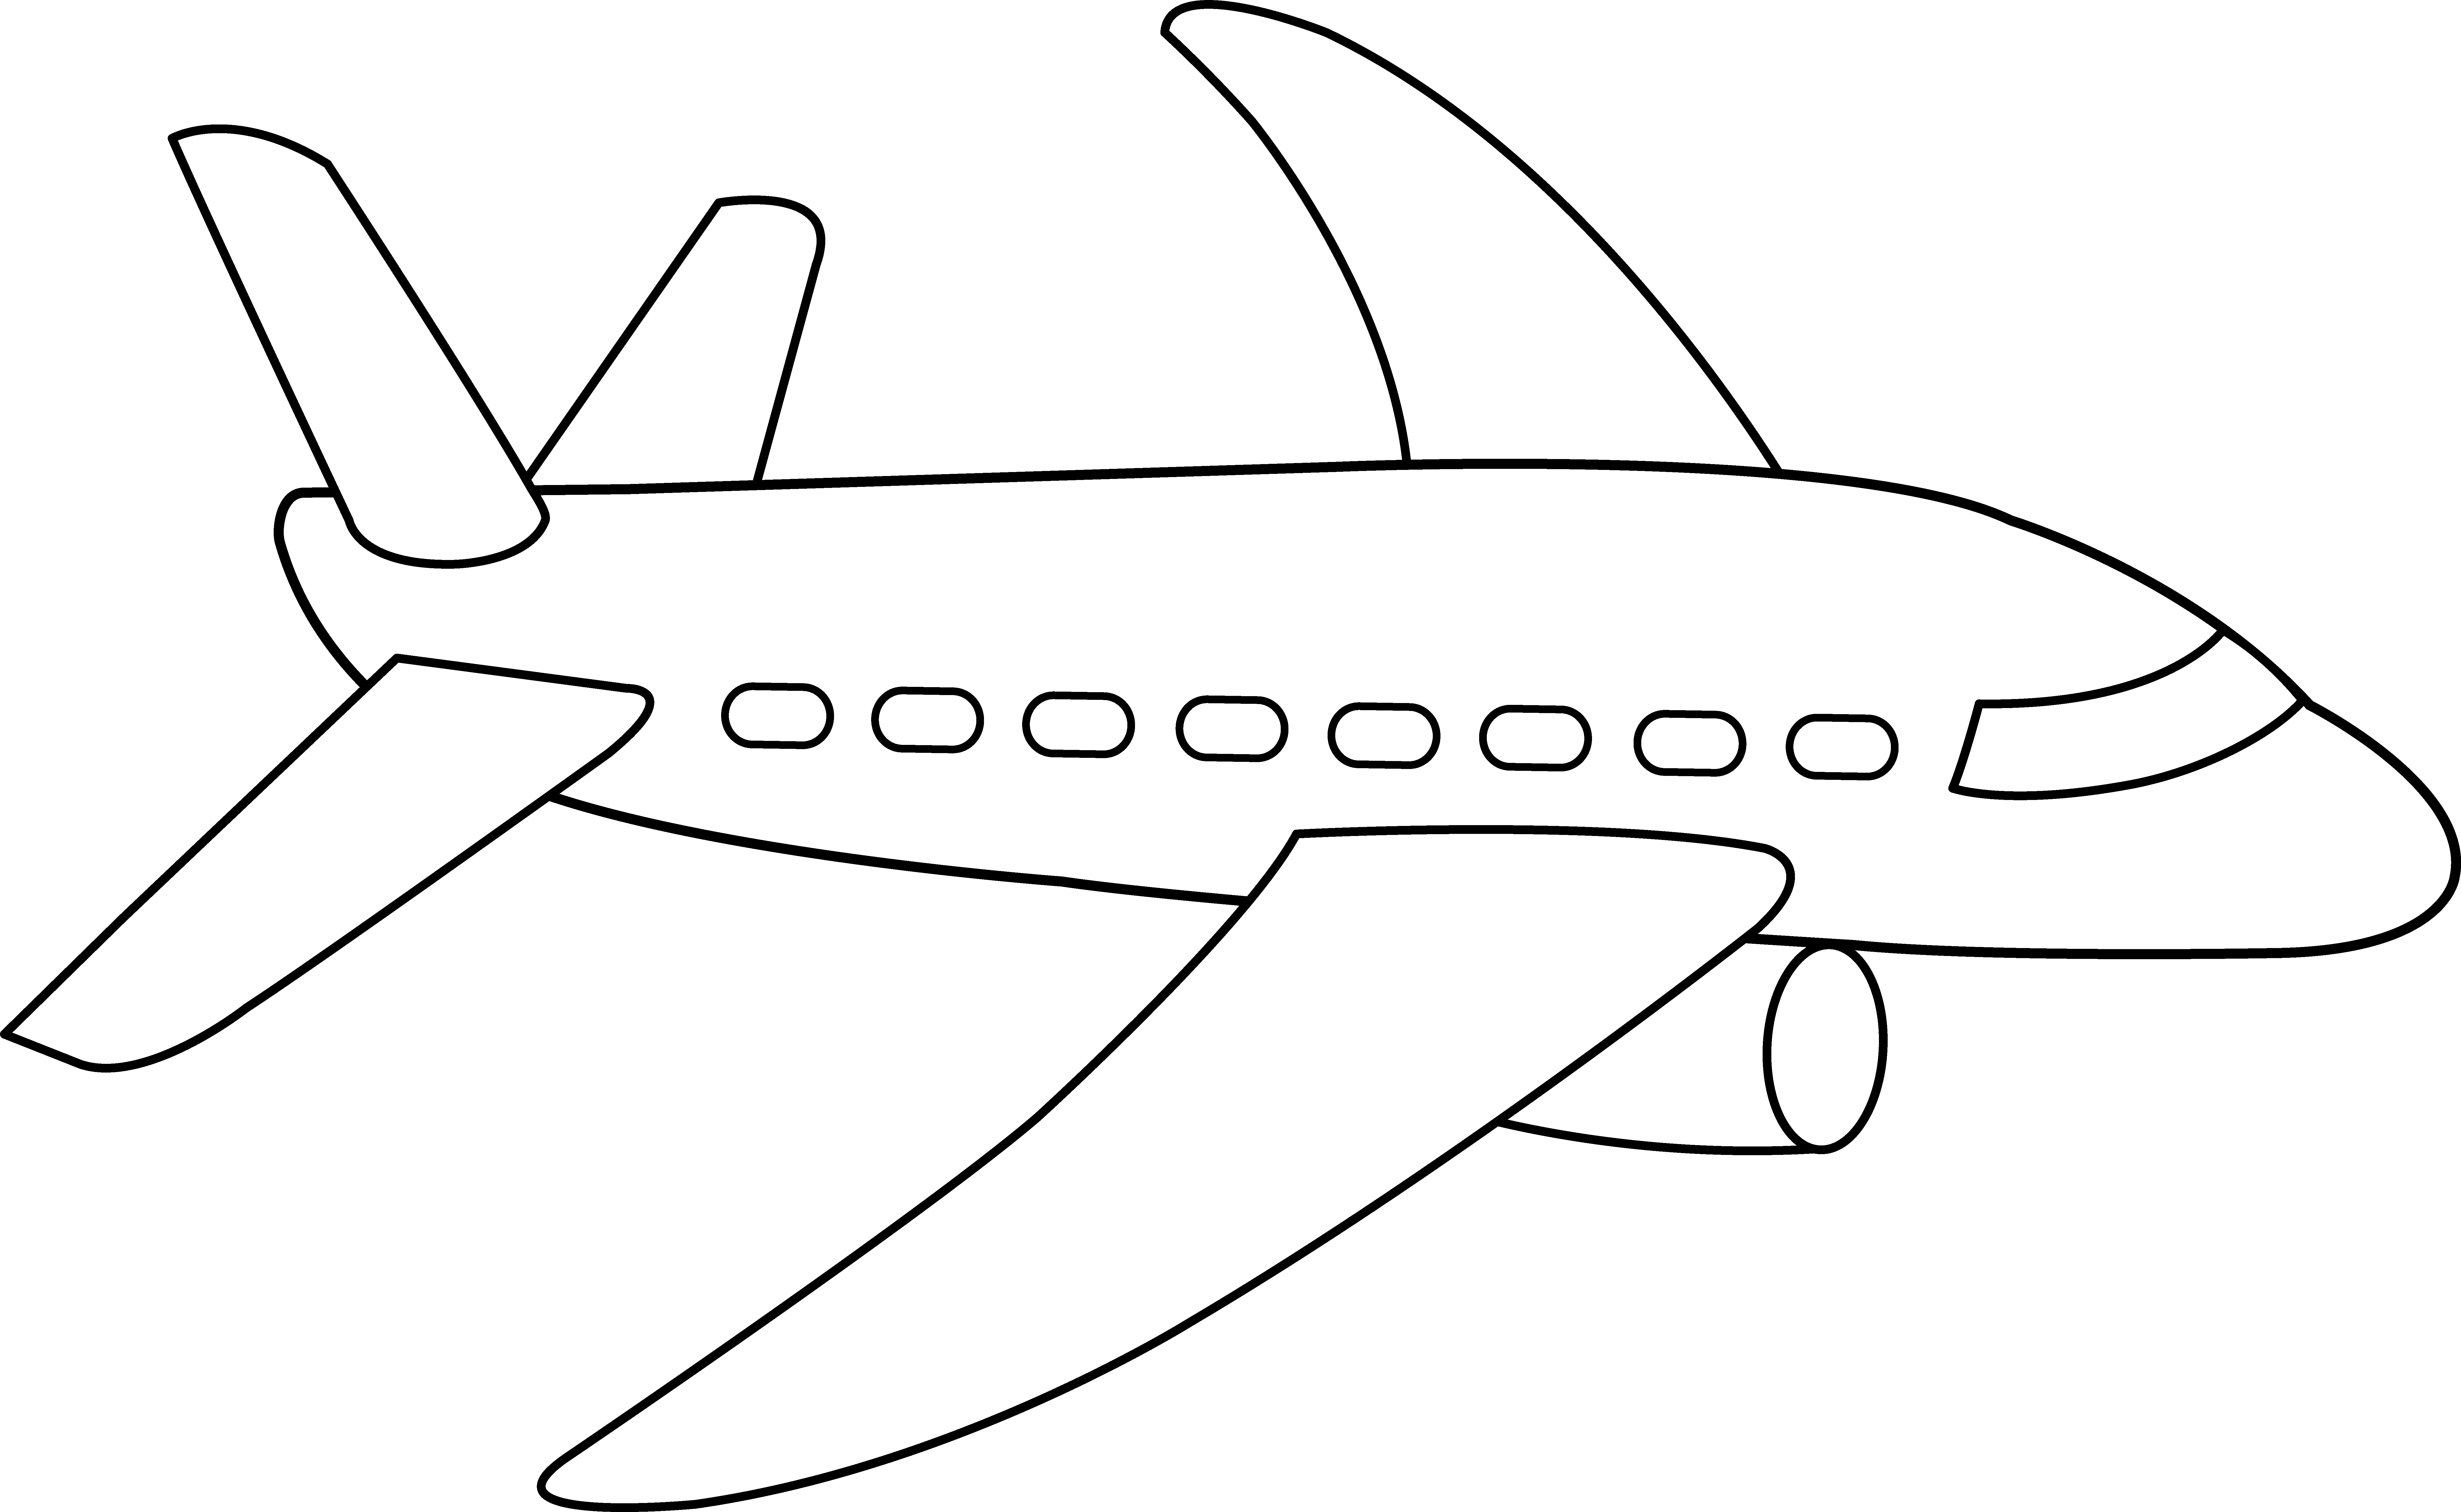 Airplane coloring page free. Plane clipart clip